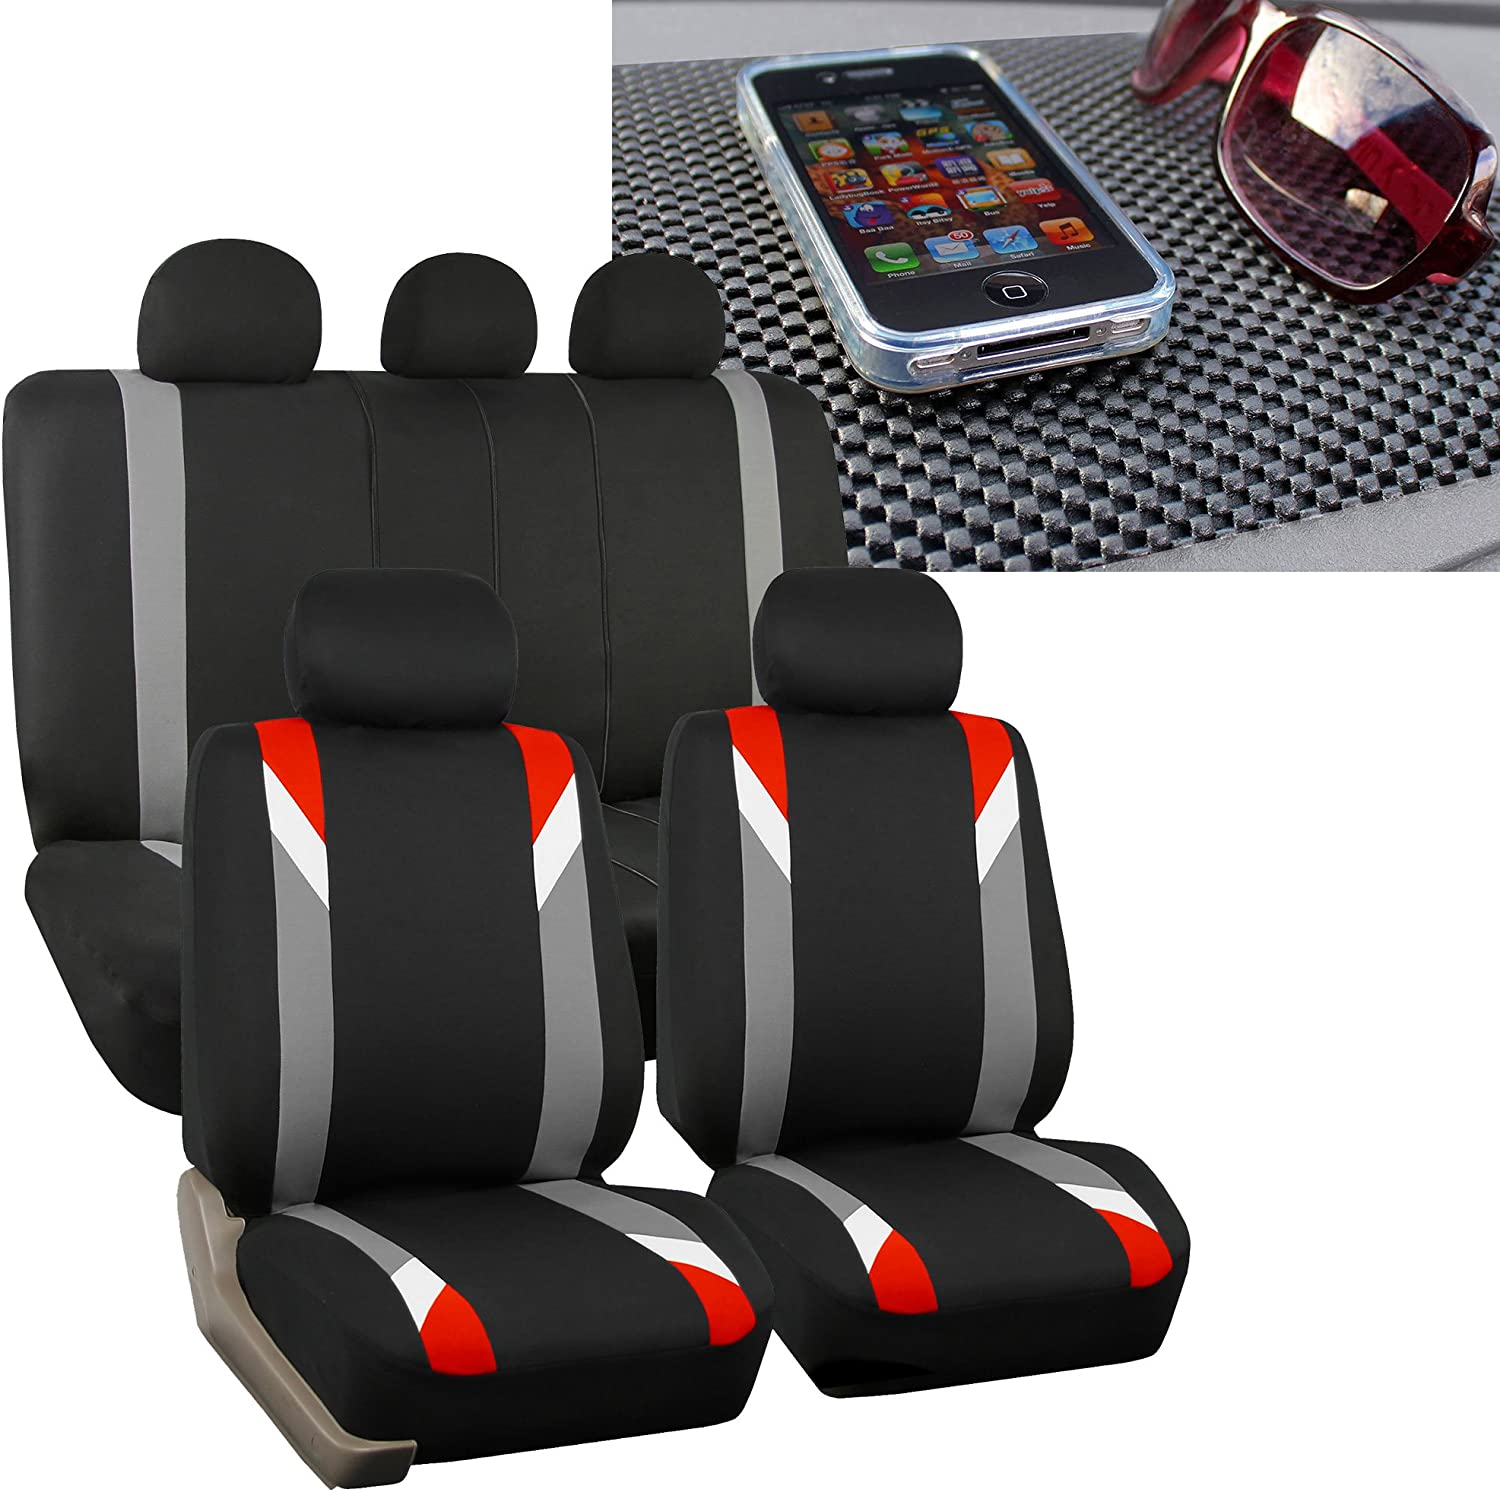 FH Group FH-FB033115 Three Row-Premium Modernistic Seat Covers Red/Black FH1002 Non-Slip Dash Pad- Fit Most Car, Truck, SUV, or Van